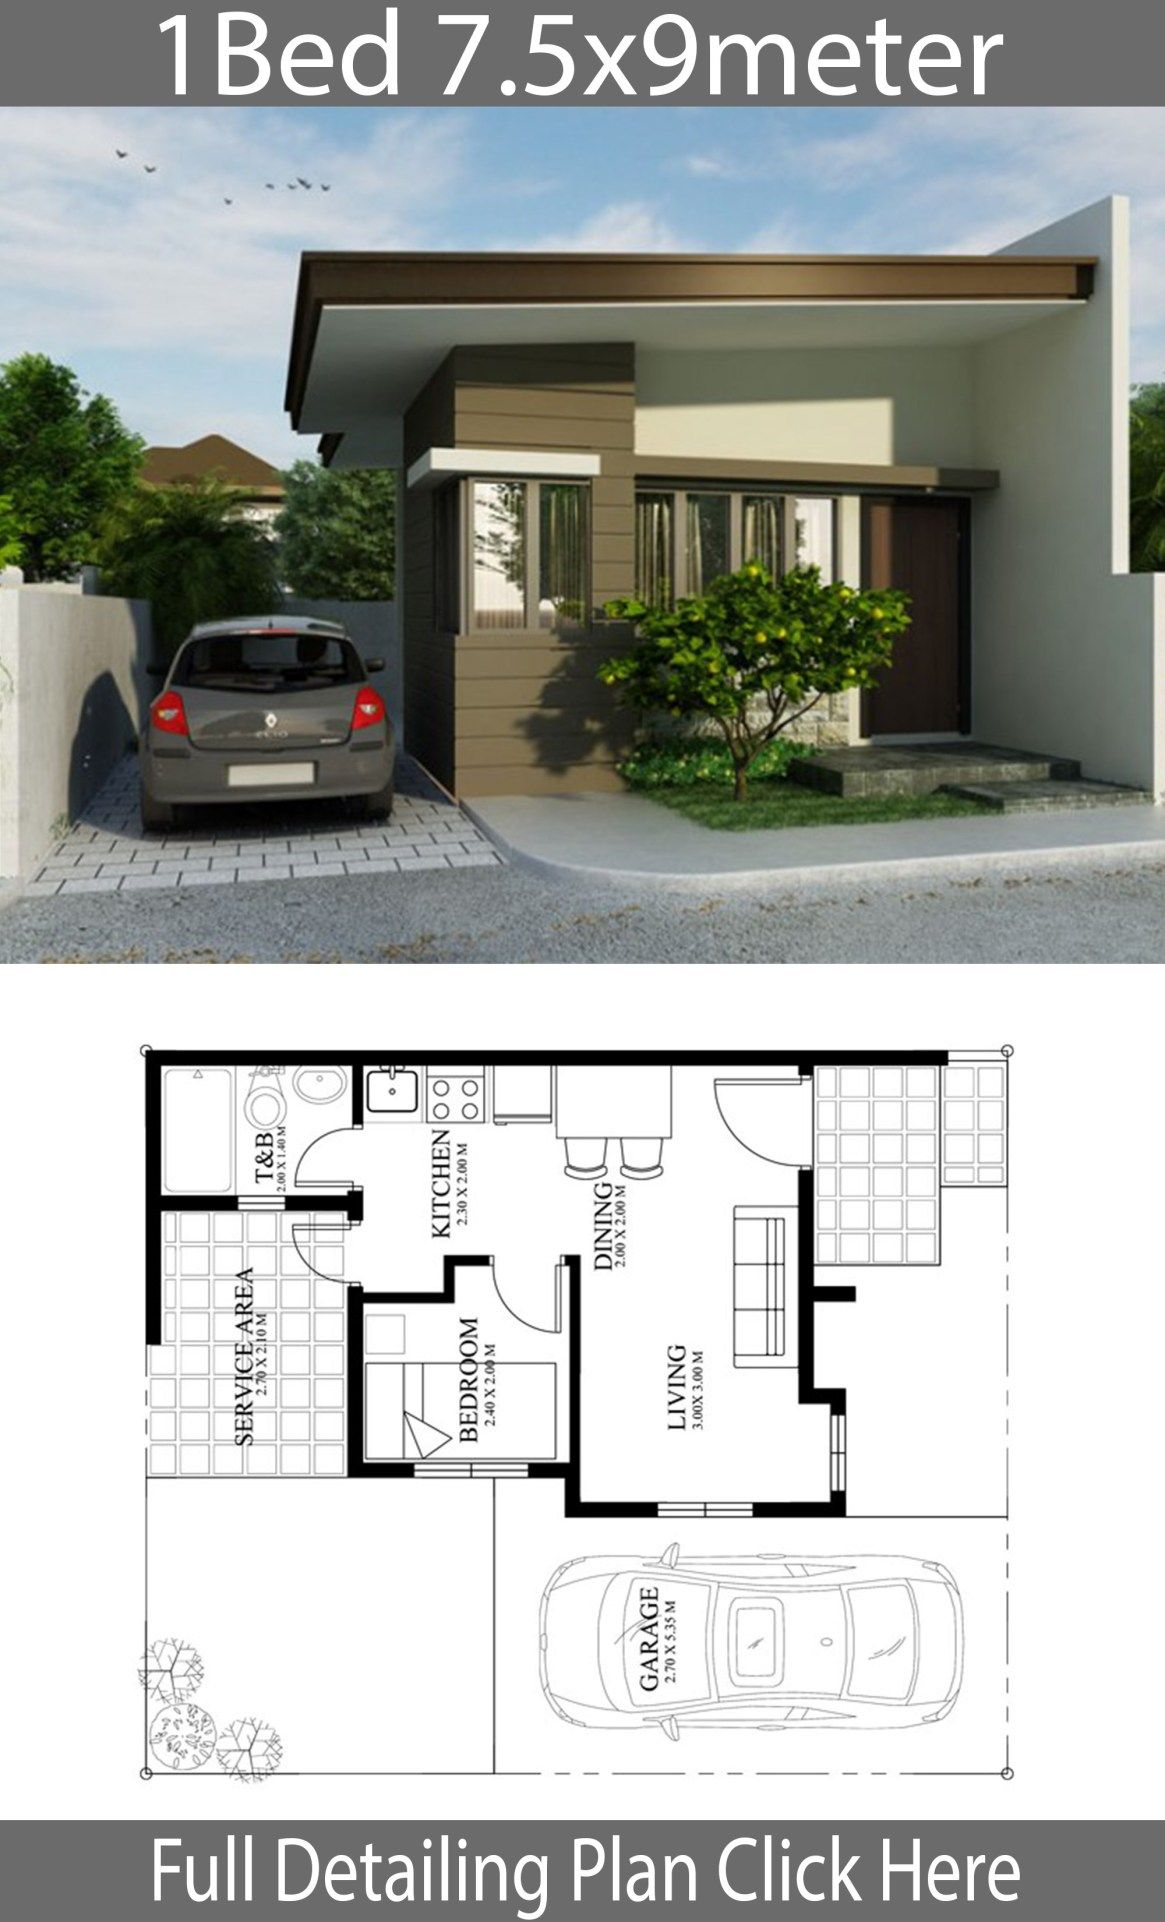 Small Home Design Plan 7 5x9m With One Bedrooms Home Design With Plansearch Small House Design Plans One Bedroom House Plans Home Design Plan